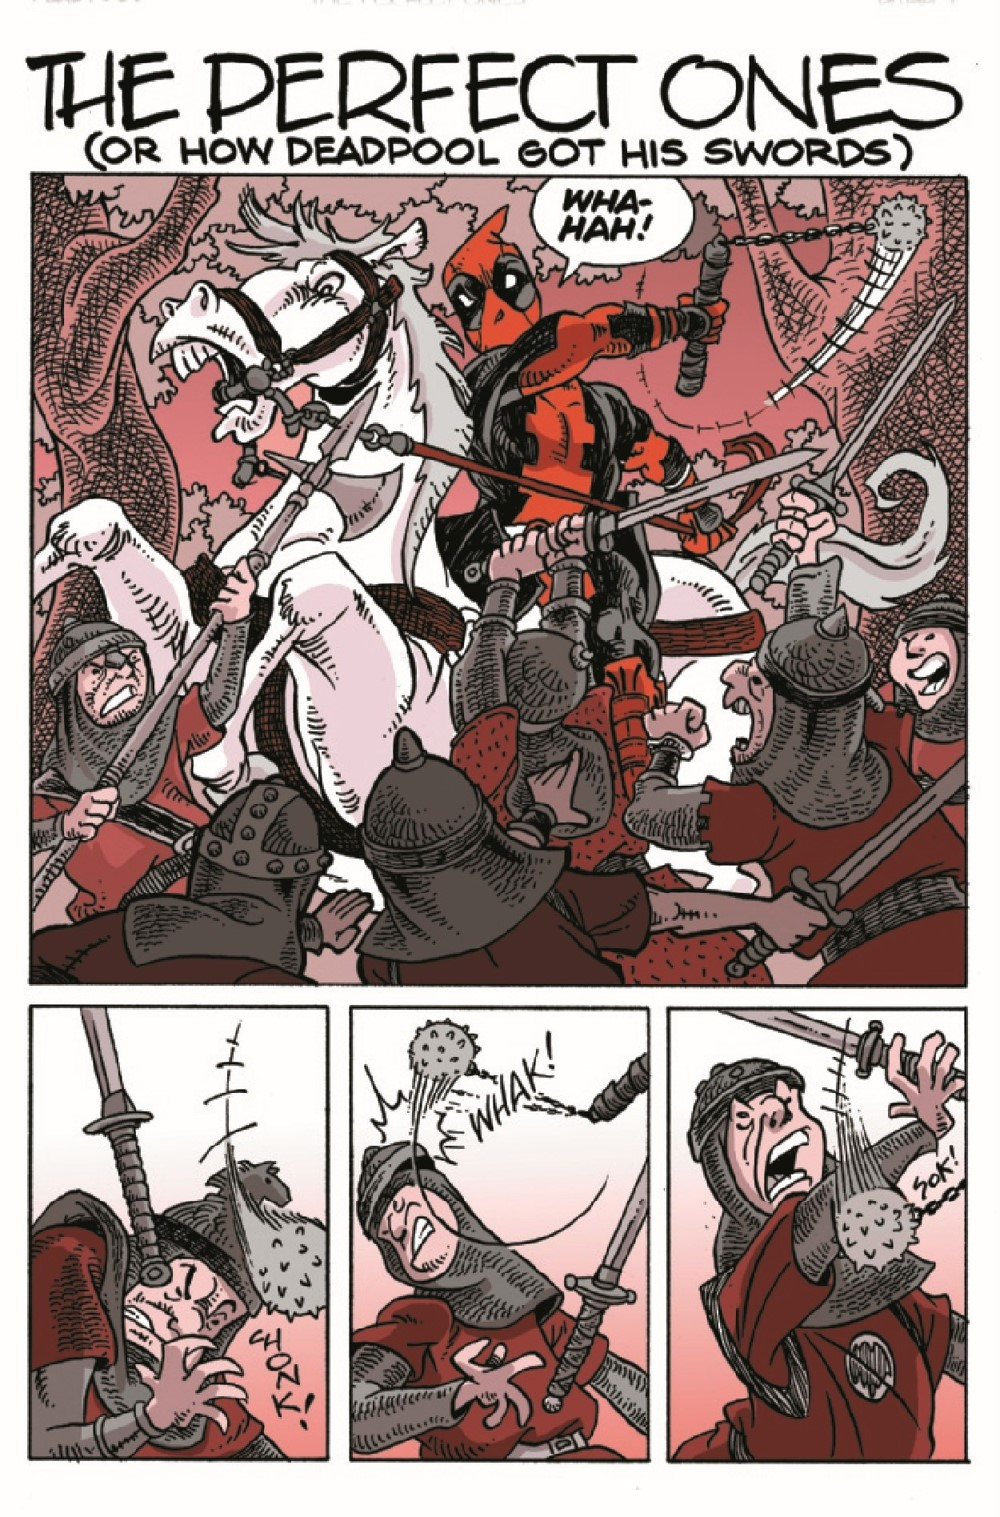 DPOOLBLKWHBL2021003_Preview-6 ComicList Previews: DEADPOOL BLACK WHITE AND BLOOD #3 (OF 4)